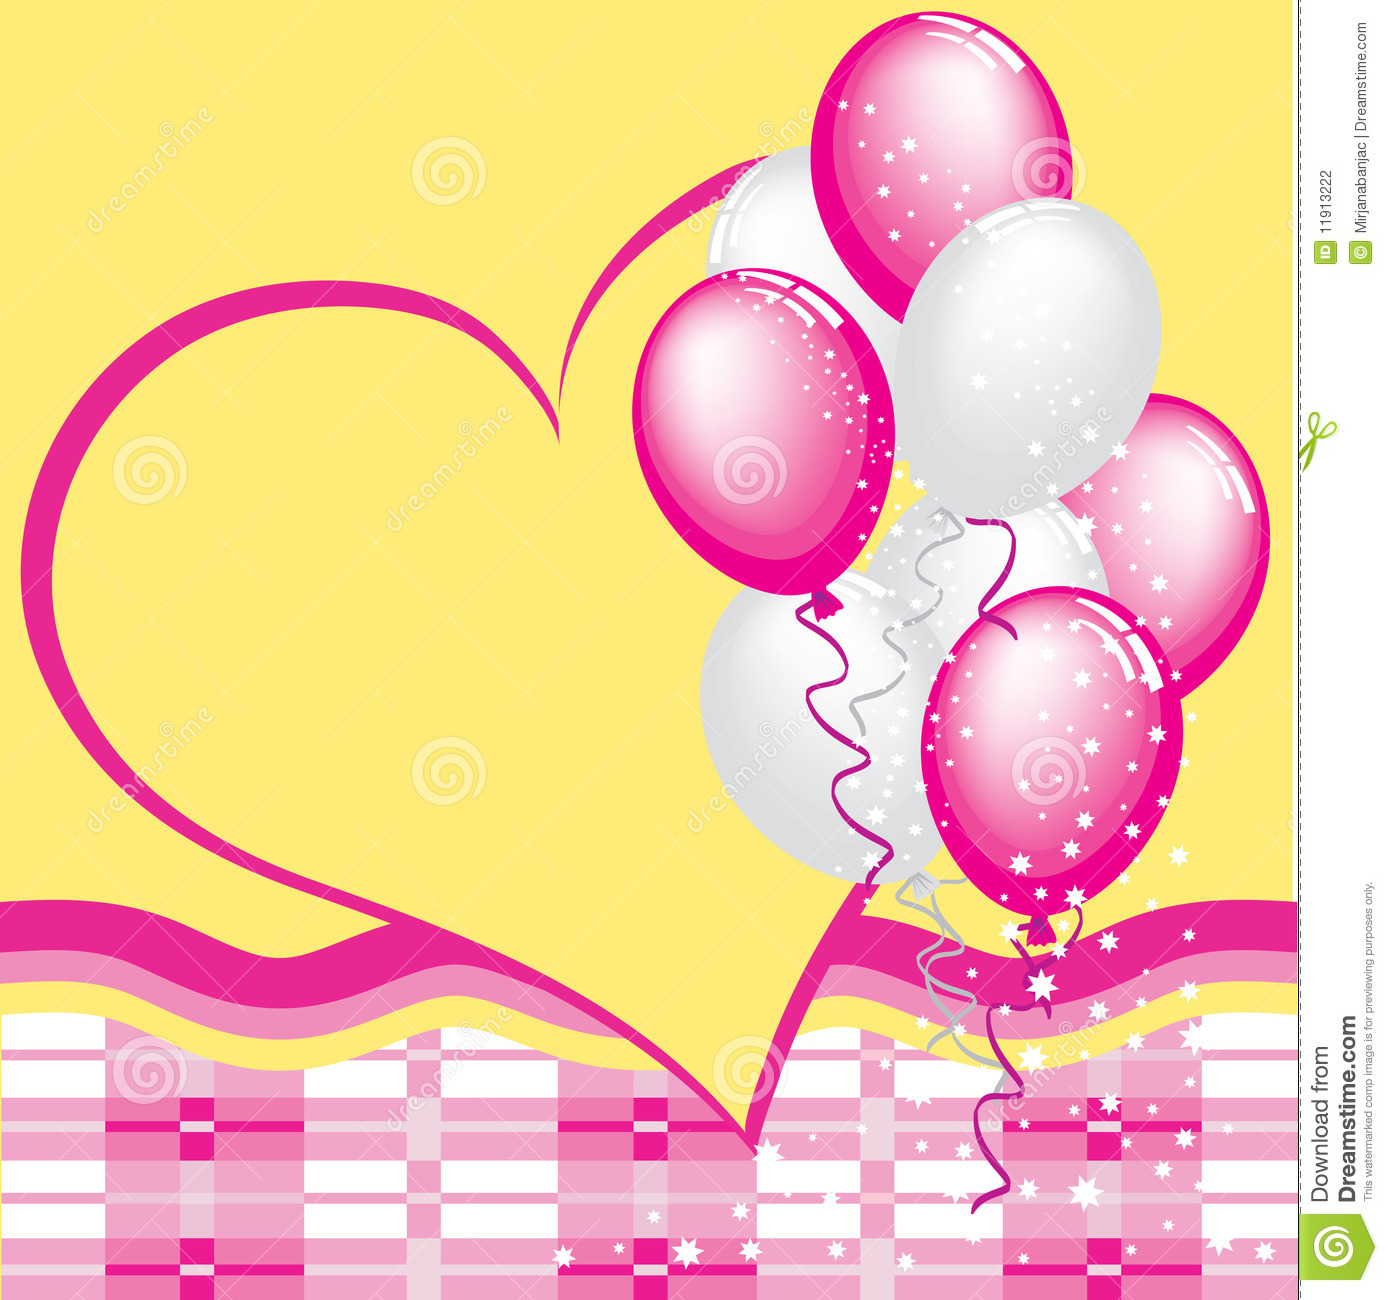 birthday background for baby girl ; birthday-background-11913222